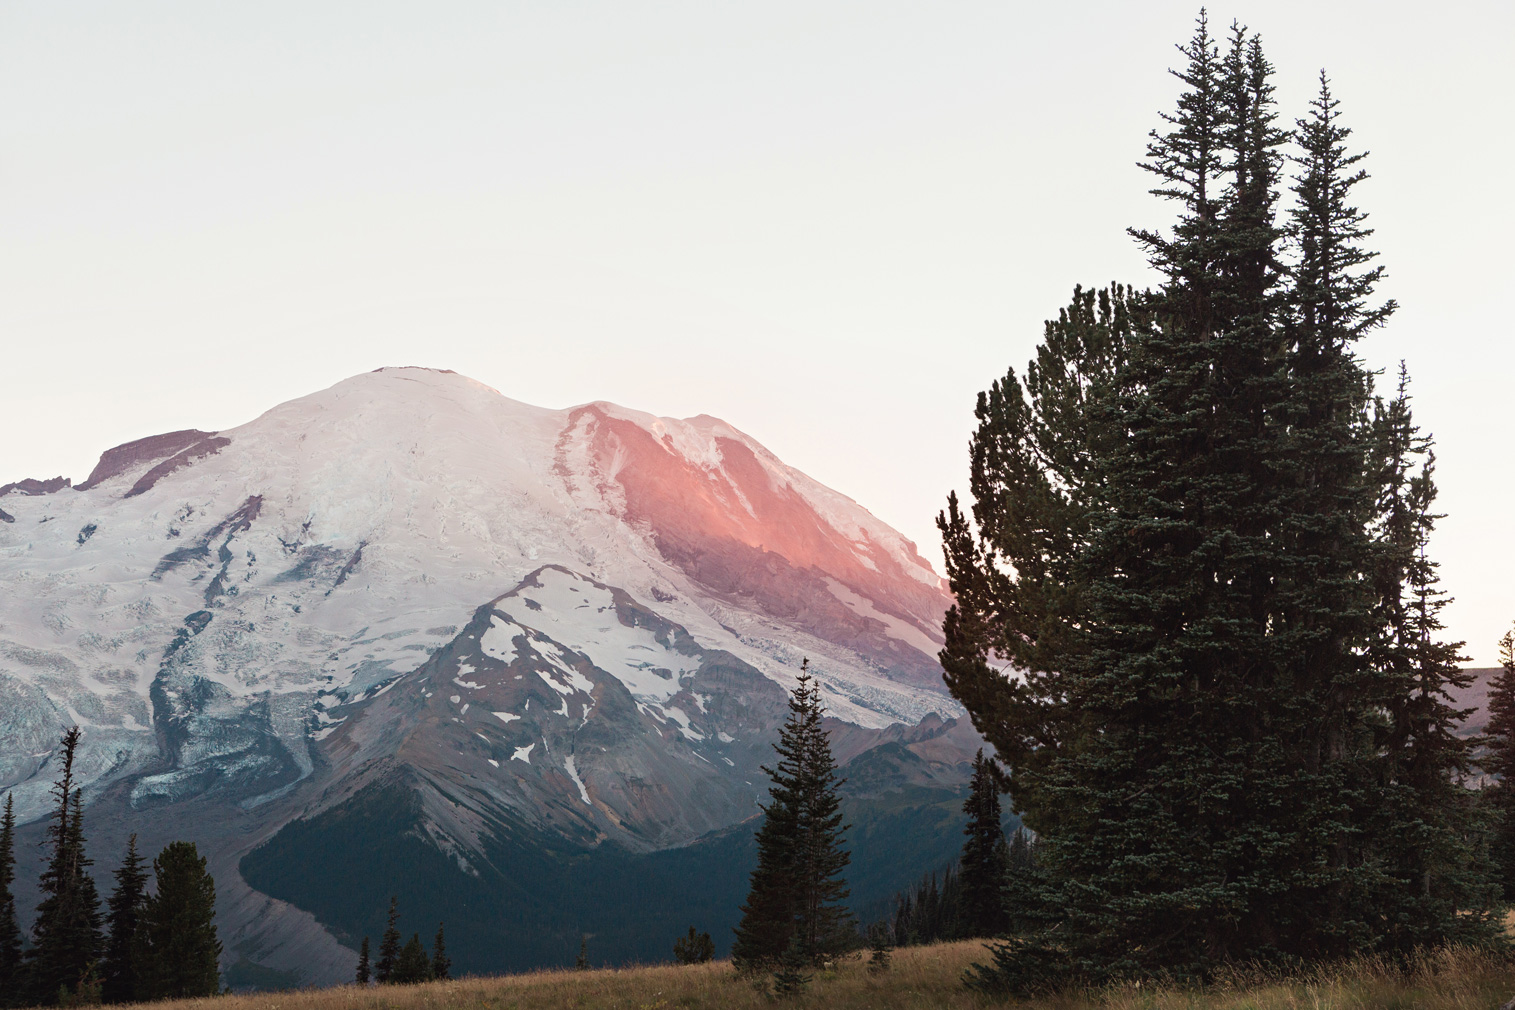 CindyGiovagnoli_Mount_Rainier_National_Park_Washington-036.jpg